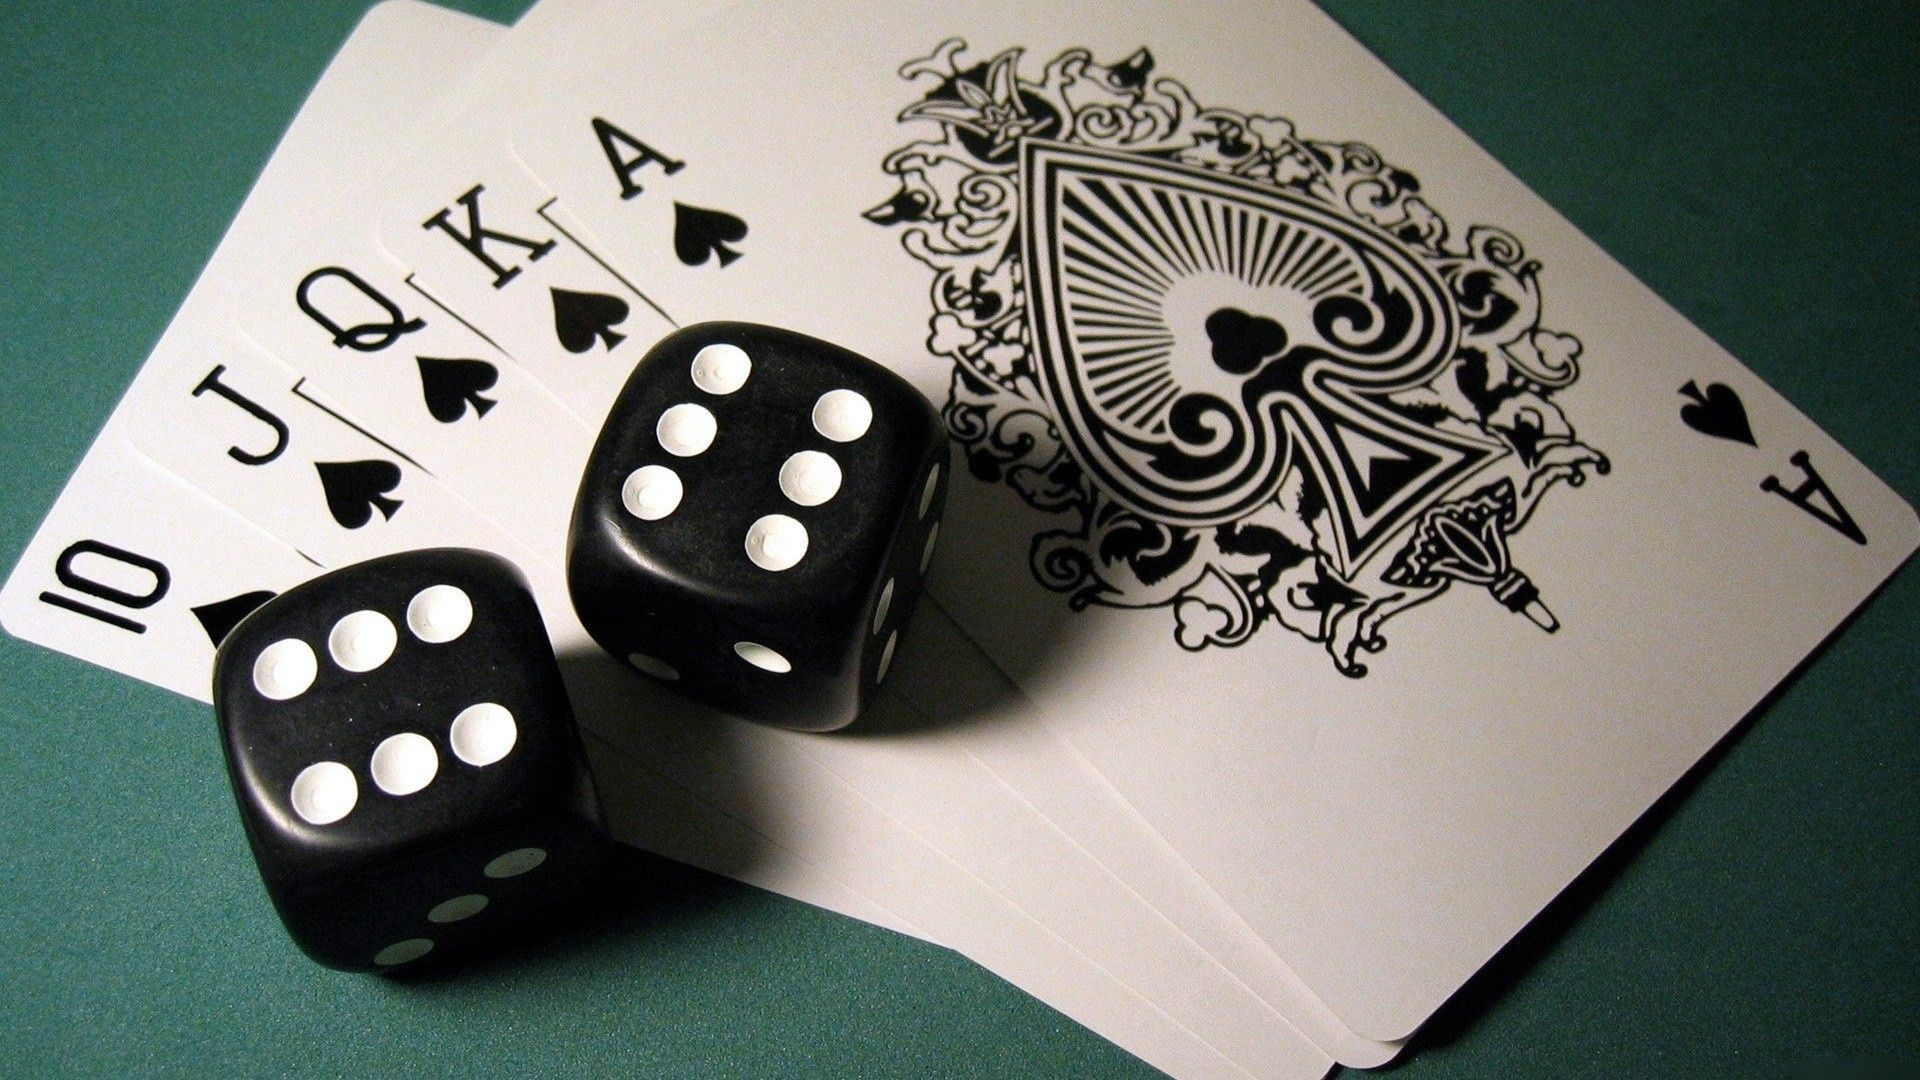 Love Playing Cards And Dice Wallpaper HD 6282 Wallpaper